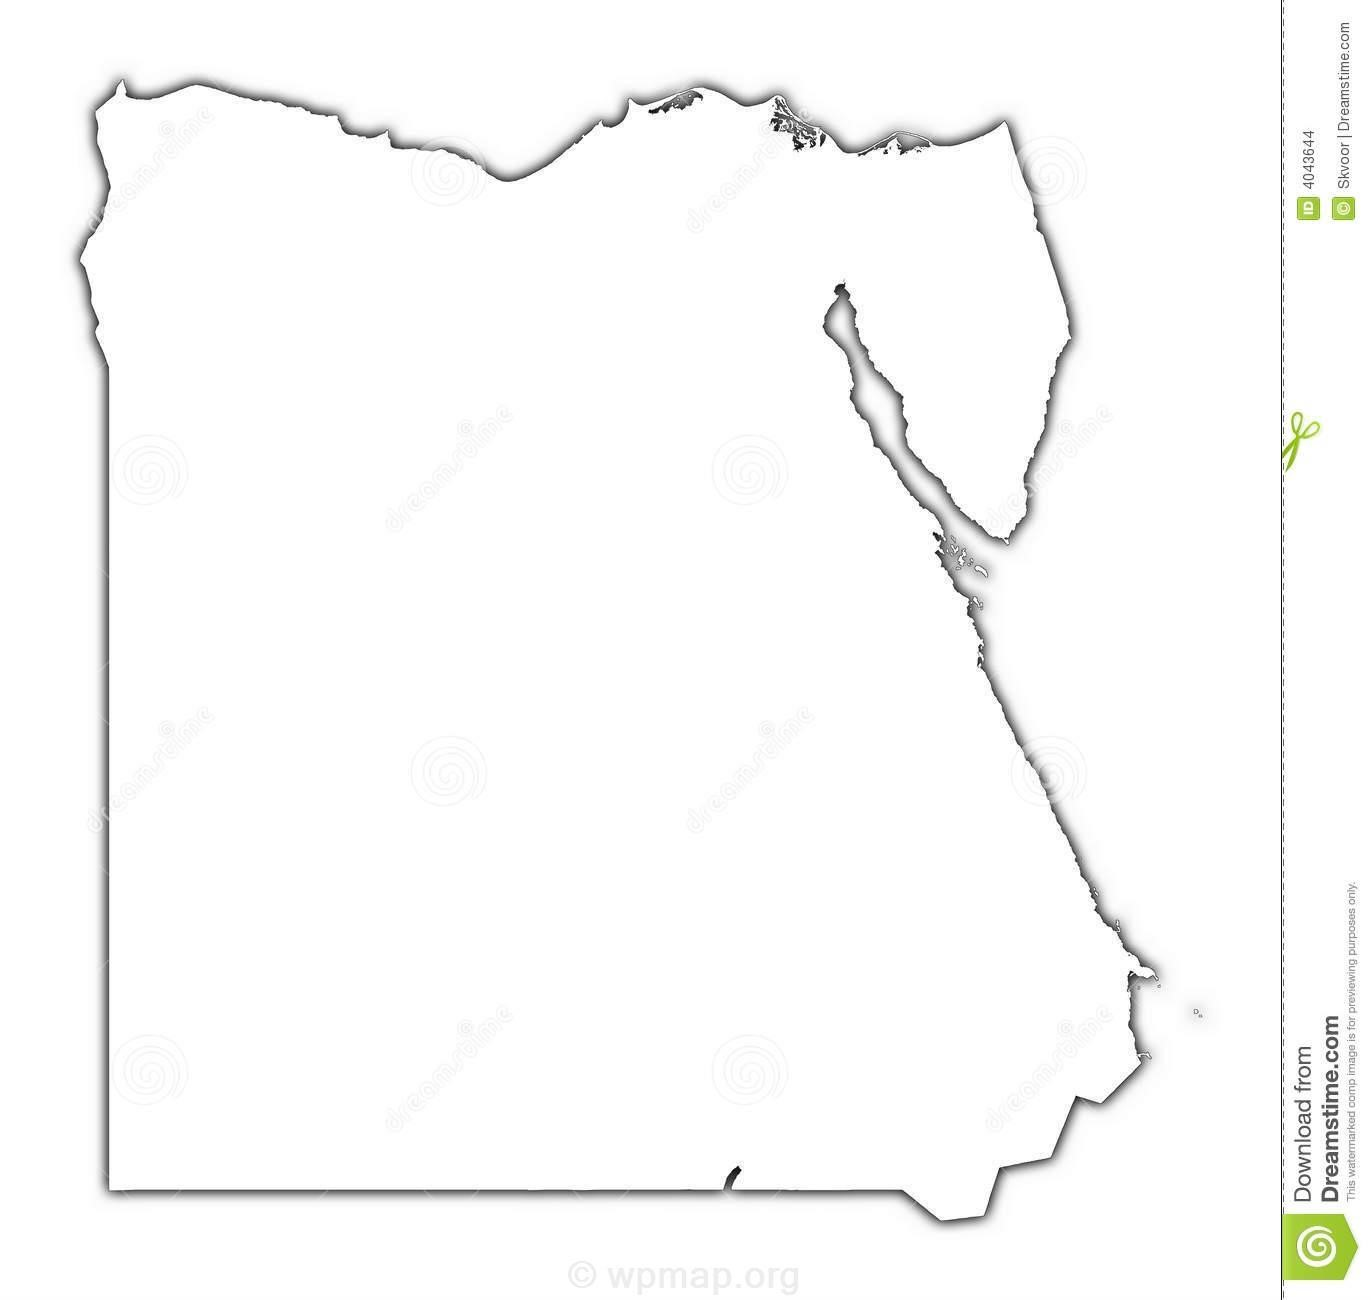 egypt-outline-map-shadow-4043644